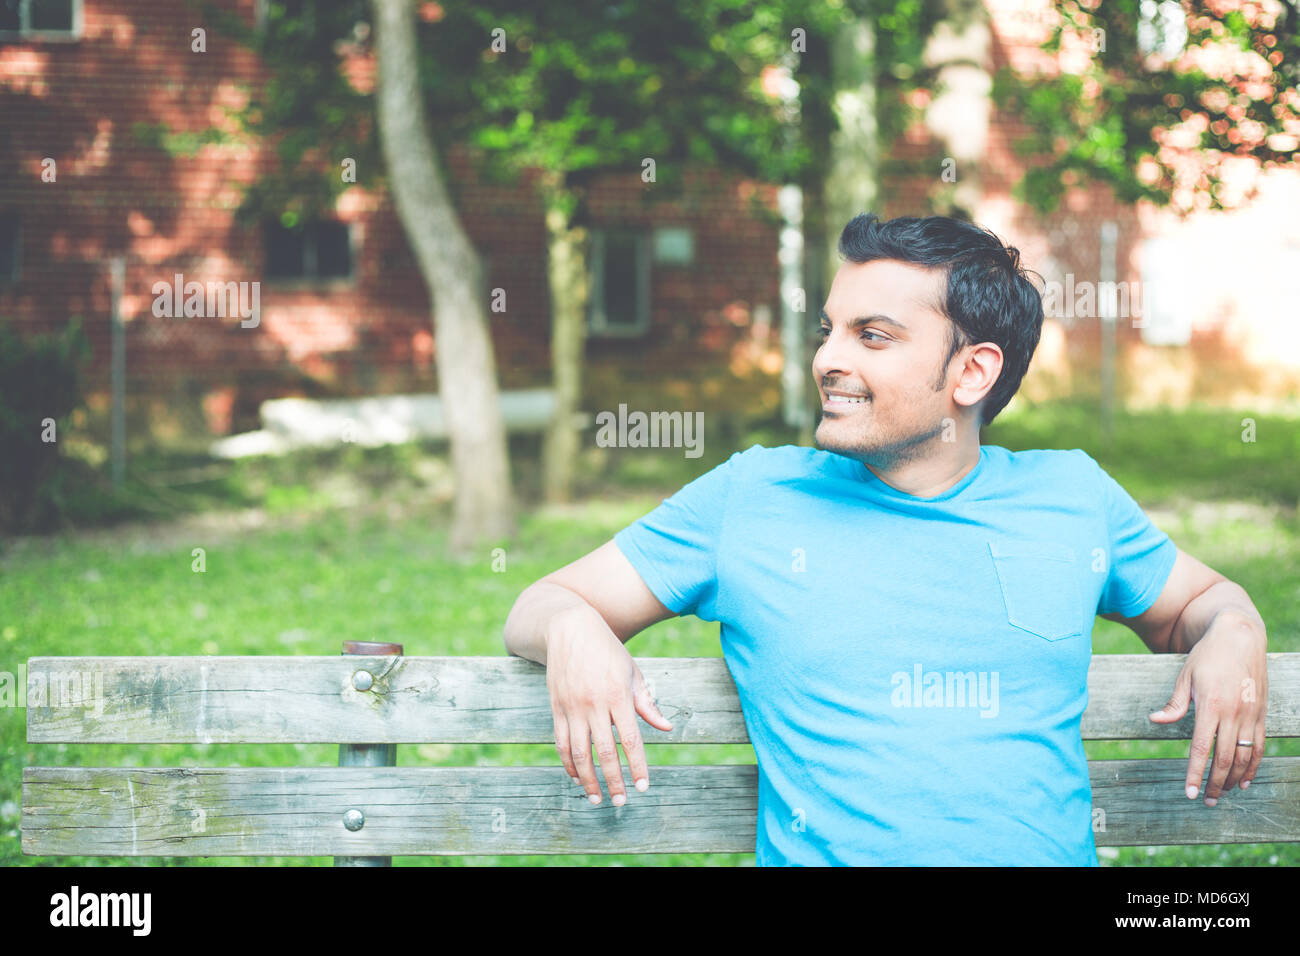 Closeup portrait, happy smiling, regular young man in blue shirt sitting on wooden bench, relaxed looking to side, isolate background trees, woods. Re - Stock Image